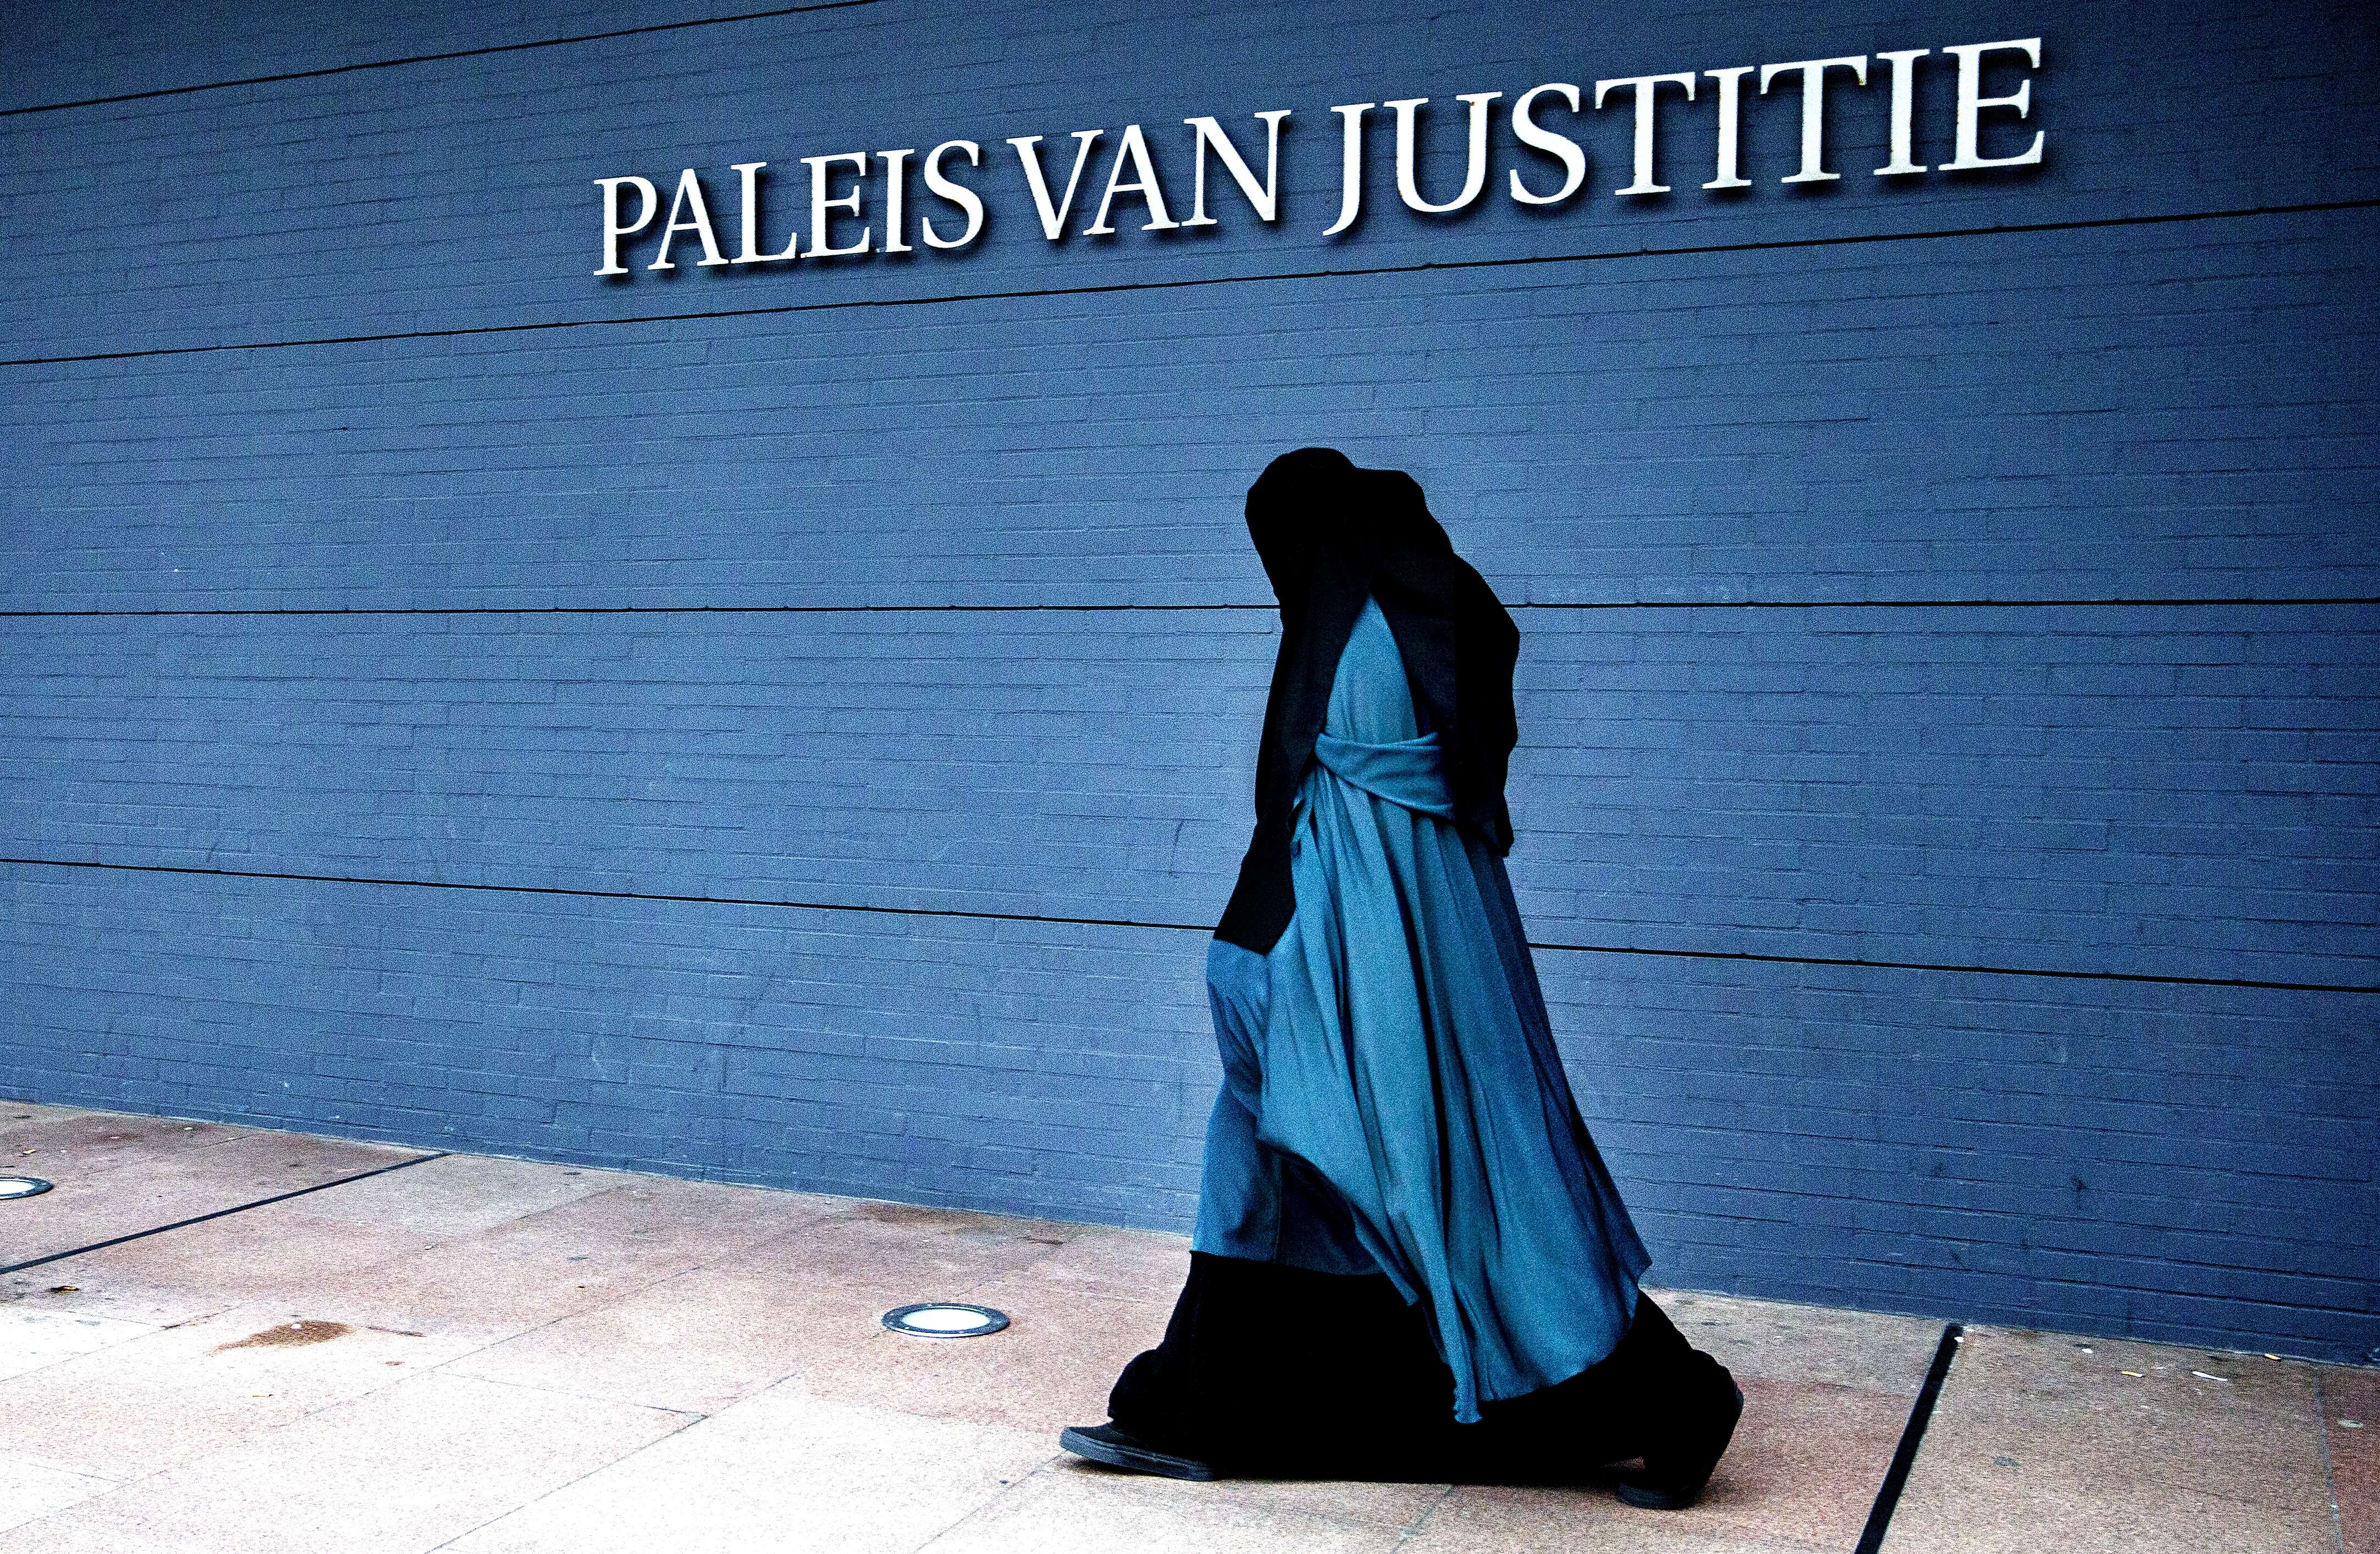 A woman wearing a burqa walks past the Palace of Justice in The Hague on December 1, 2014. The Dutch cabinet approved on May 22, 2015 a partial ban on wearing the face-covering Islamic veil, including in schools, hospitals and on public transport. AFP PHOTO / ANP PHOTO / FILER JERRY LAMPEN netherlands out (Photo credit should read JERRY LAMPEN/AFP/Getty Images)